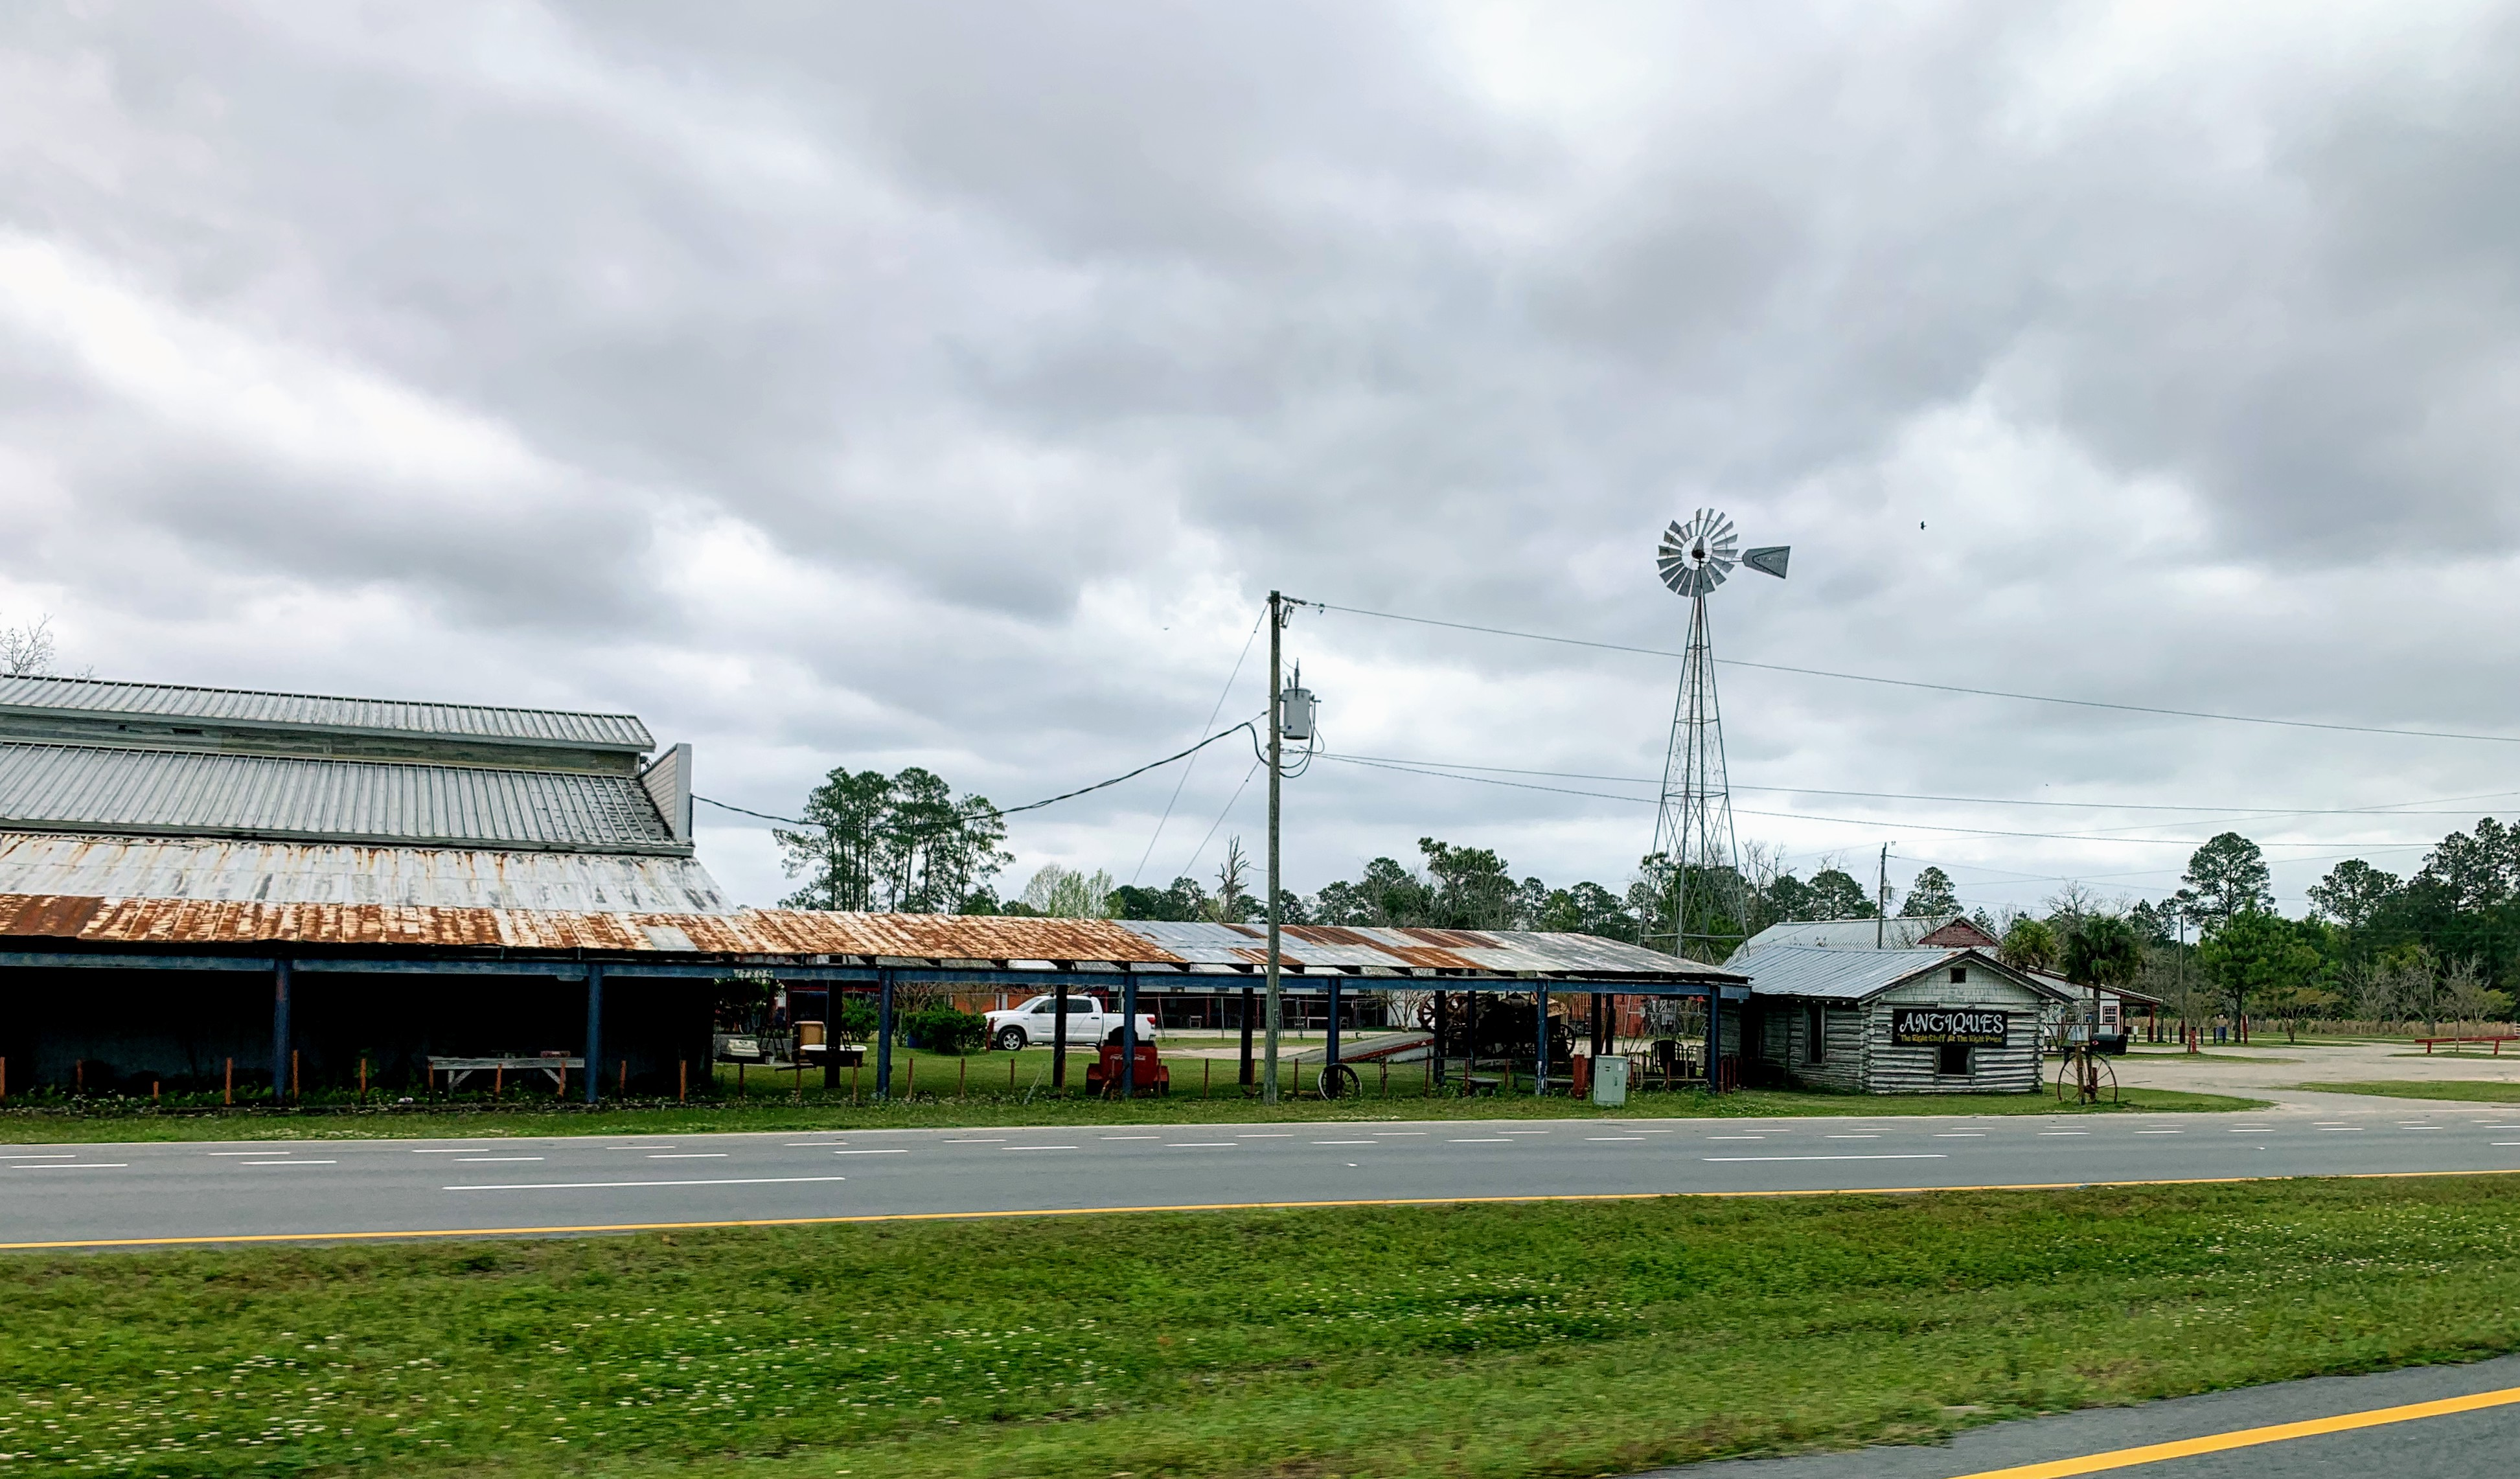 The Waldo Flea Market is a staple, we used to make trips there from Gainesville in college